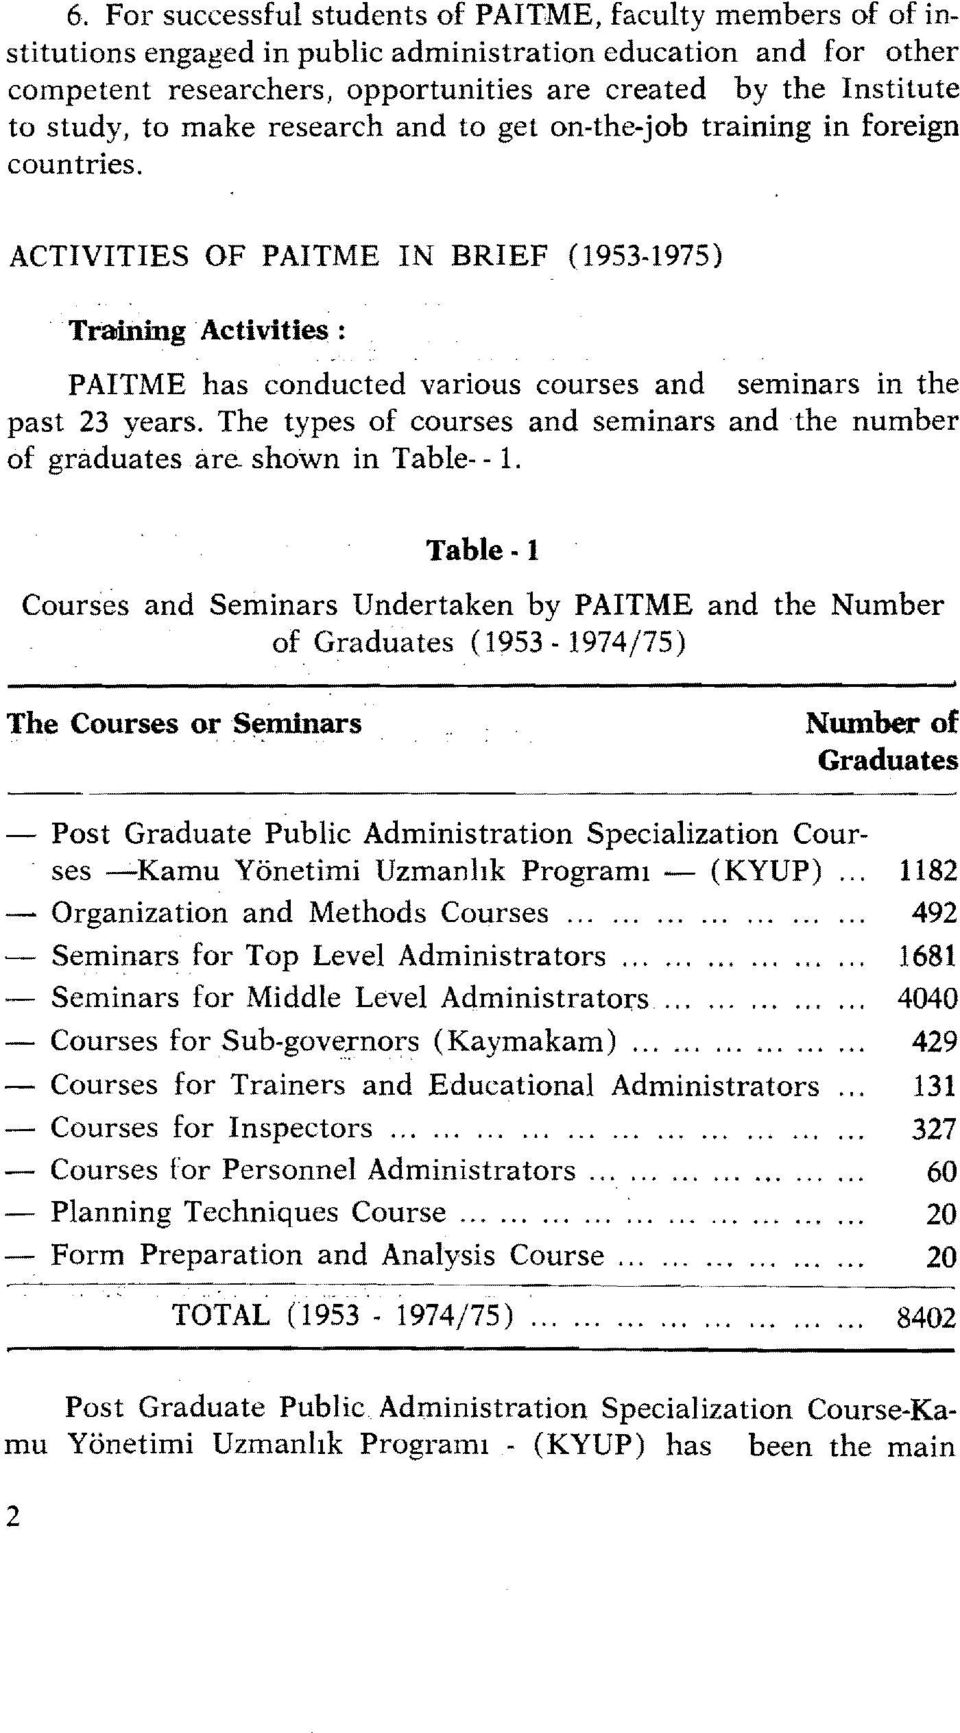 Activities: P AITME has conducted various eourses and seminars İn the past 23 years. The types of courses and seminars and the number of graduates are. shown in Table- - 1.